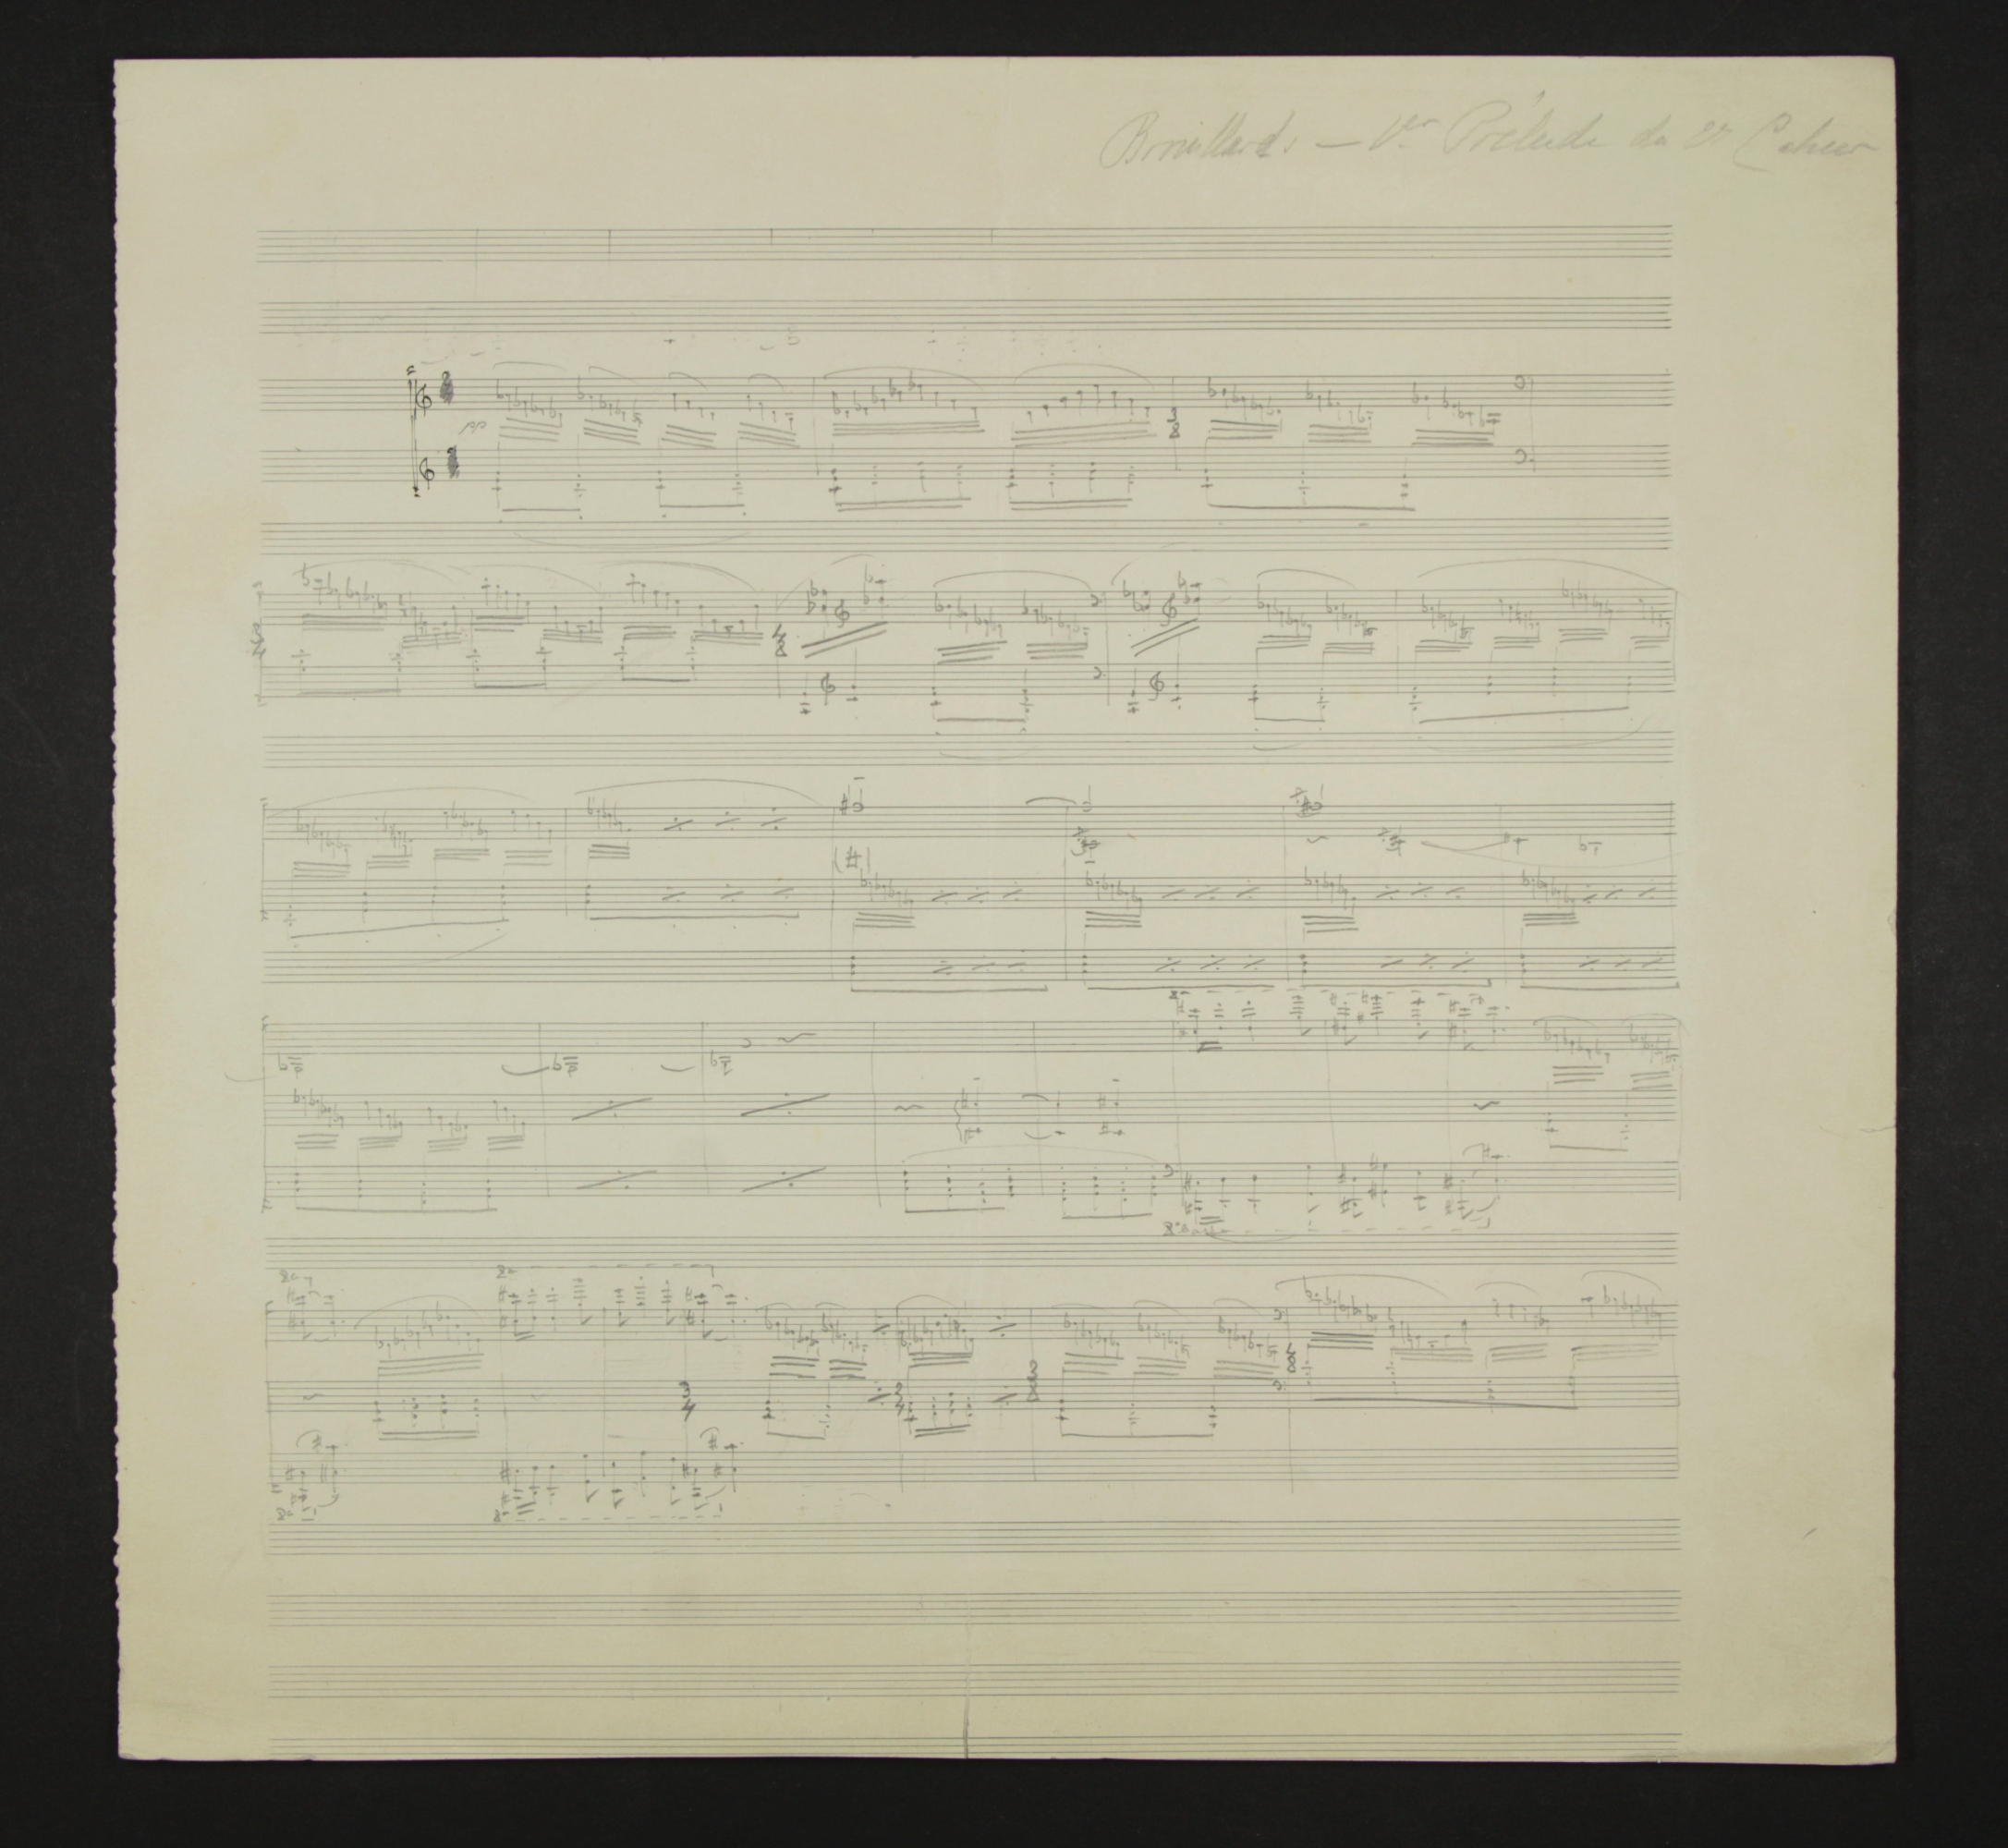 Doctoral Open Days - Music Collection Item